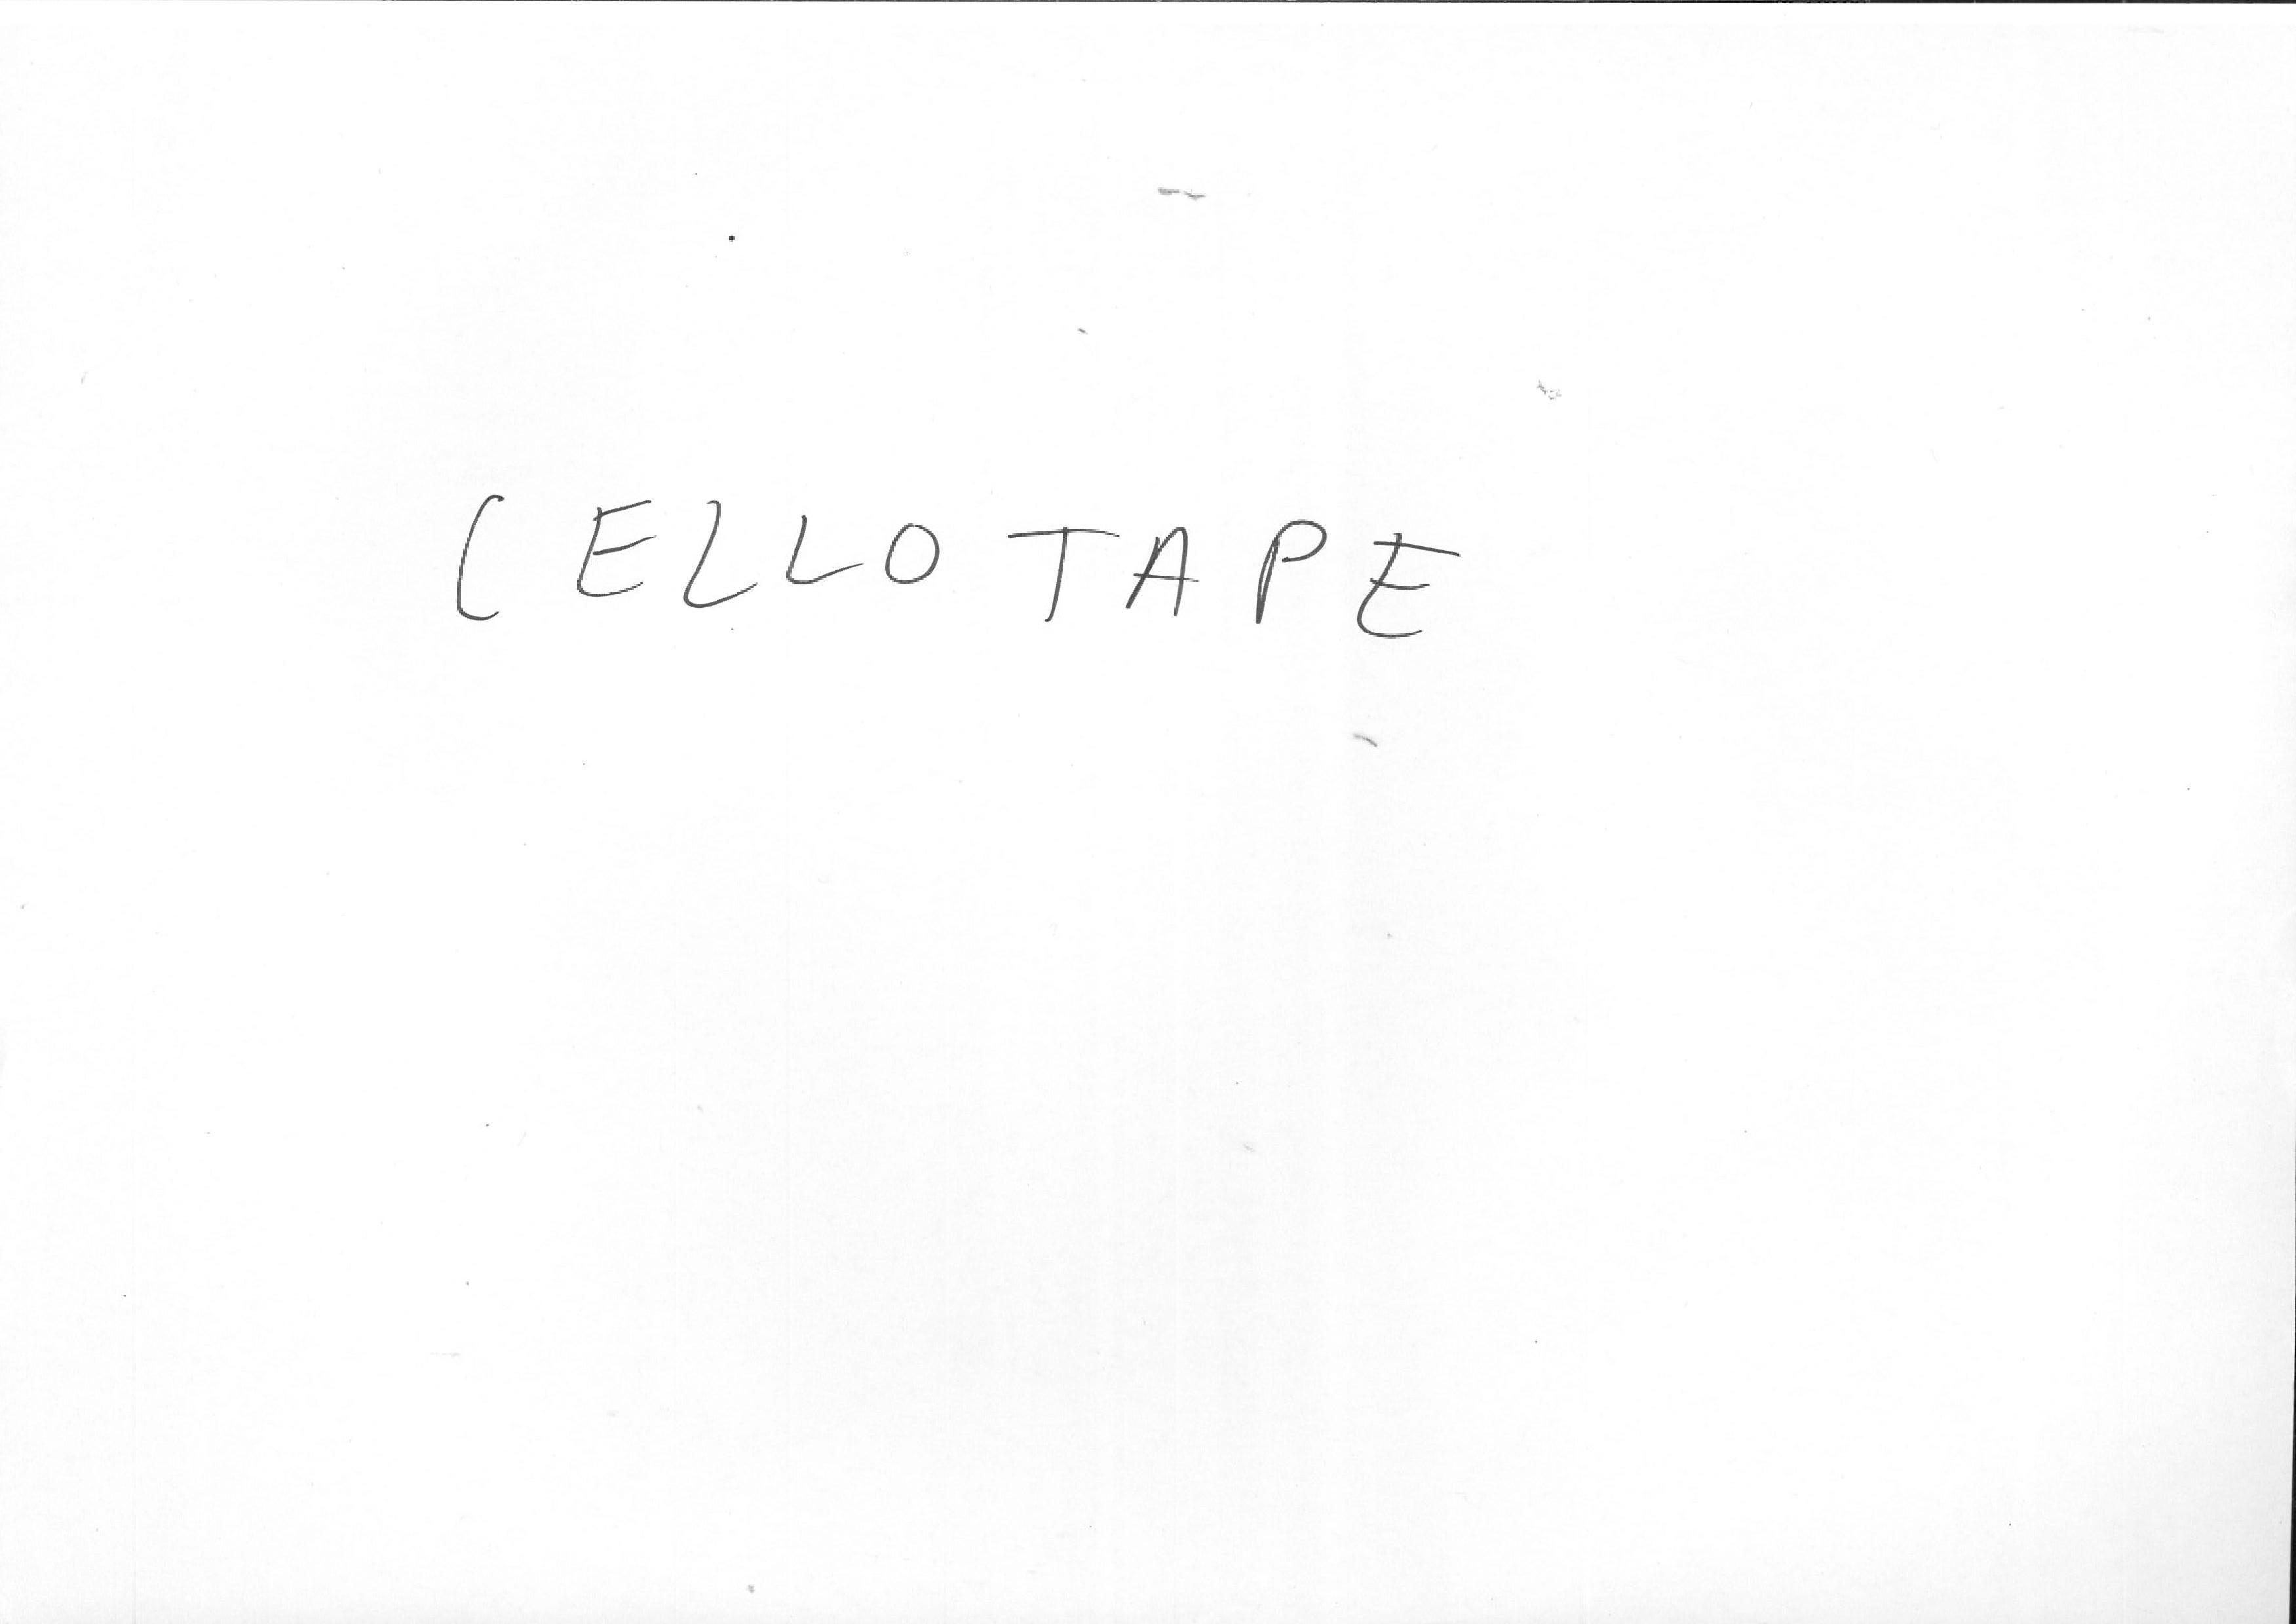 Cellotape-page-001